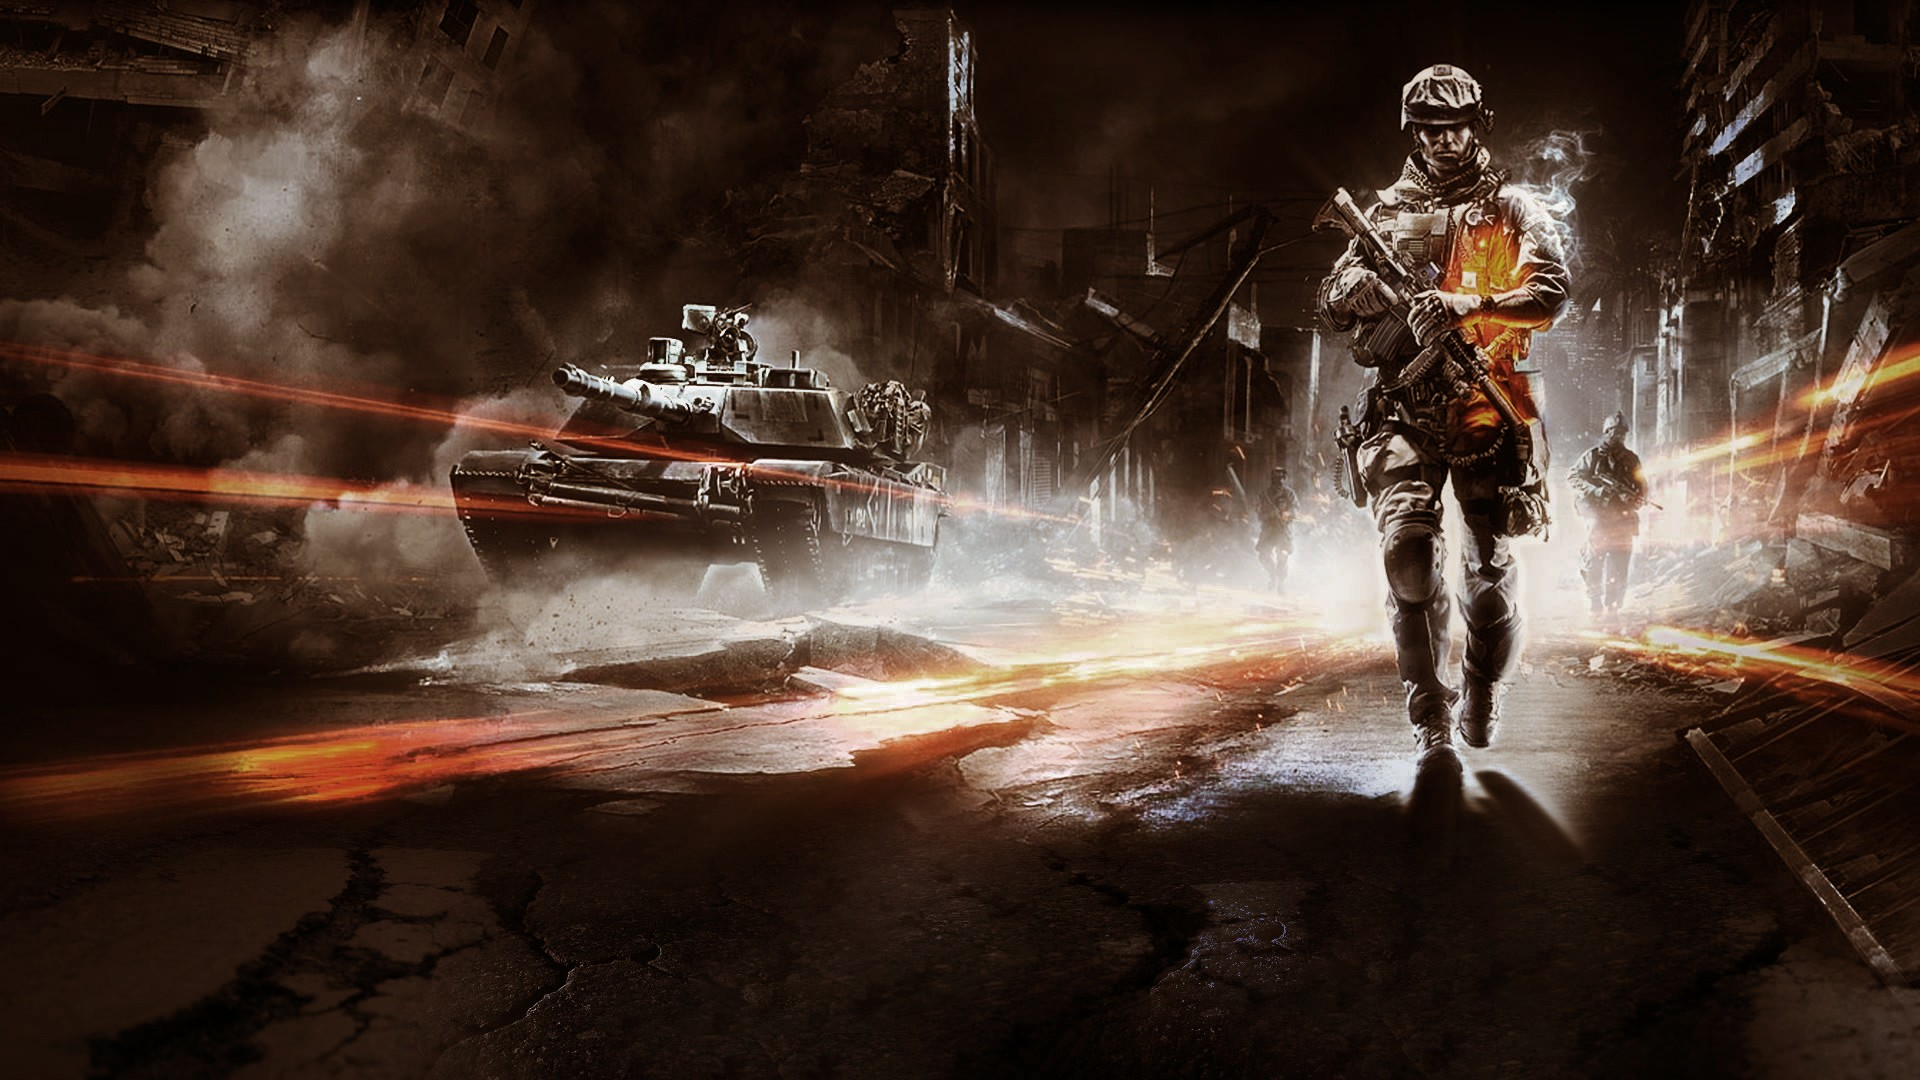 The ruined city, the tank and the soldiers - a scene from the game Battlefield 3